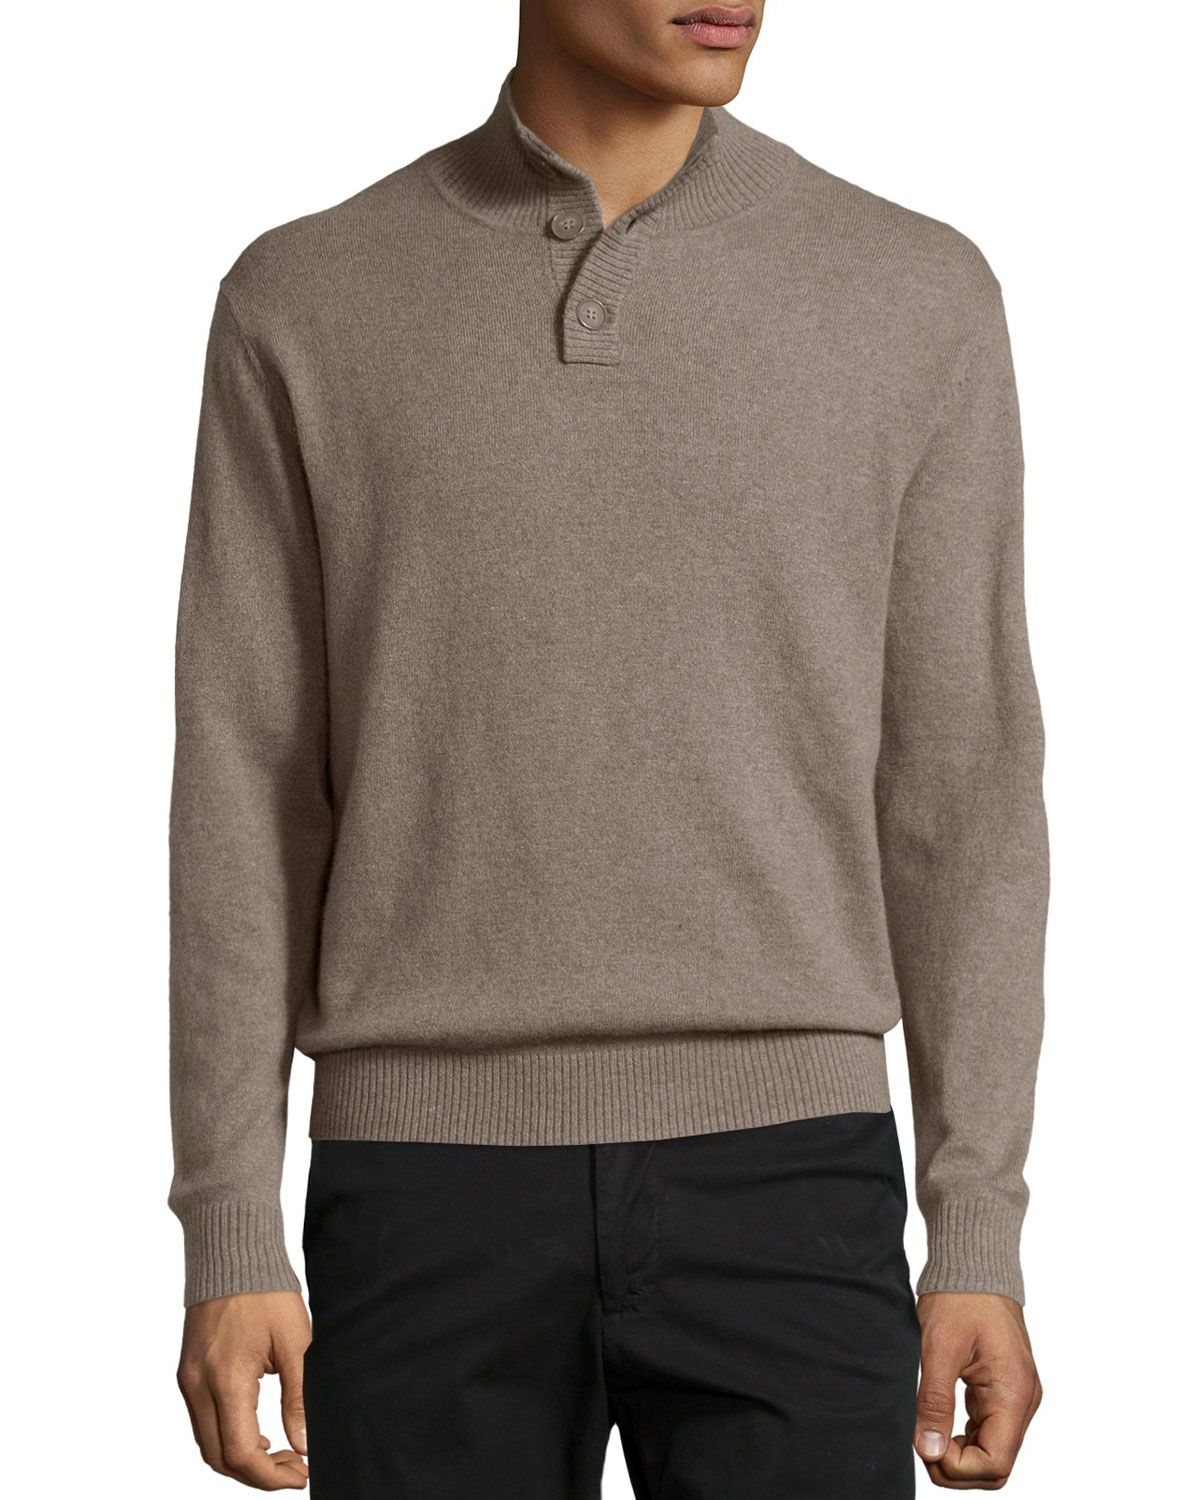 lyst neiman marcus cashmere quarter button pullover sweater in natural for men. Black Bedroom Furniture Sets. Home Design Ideas